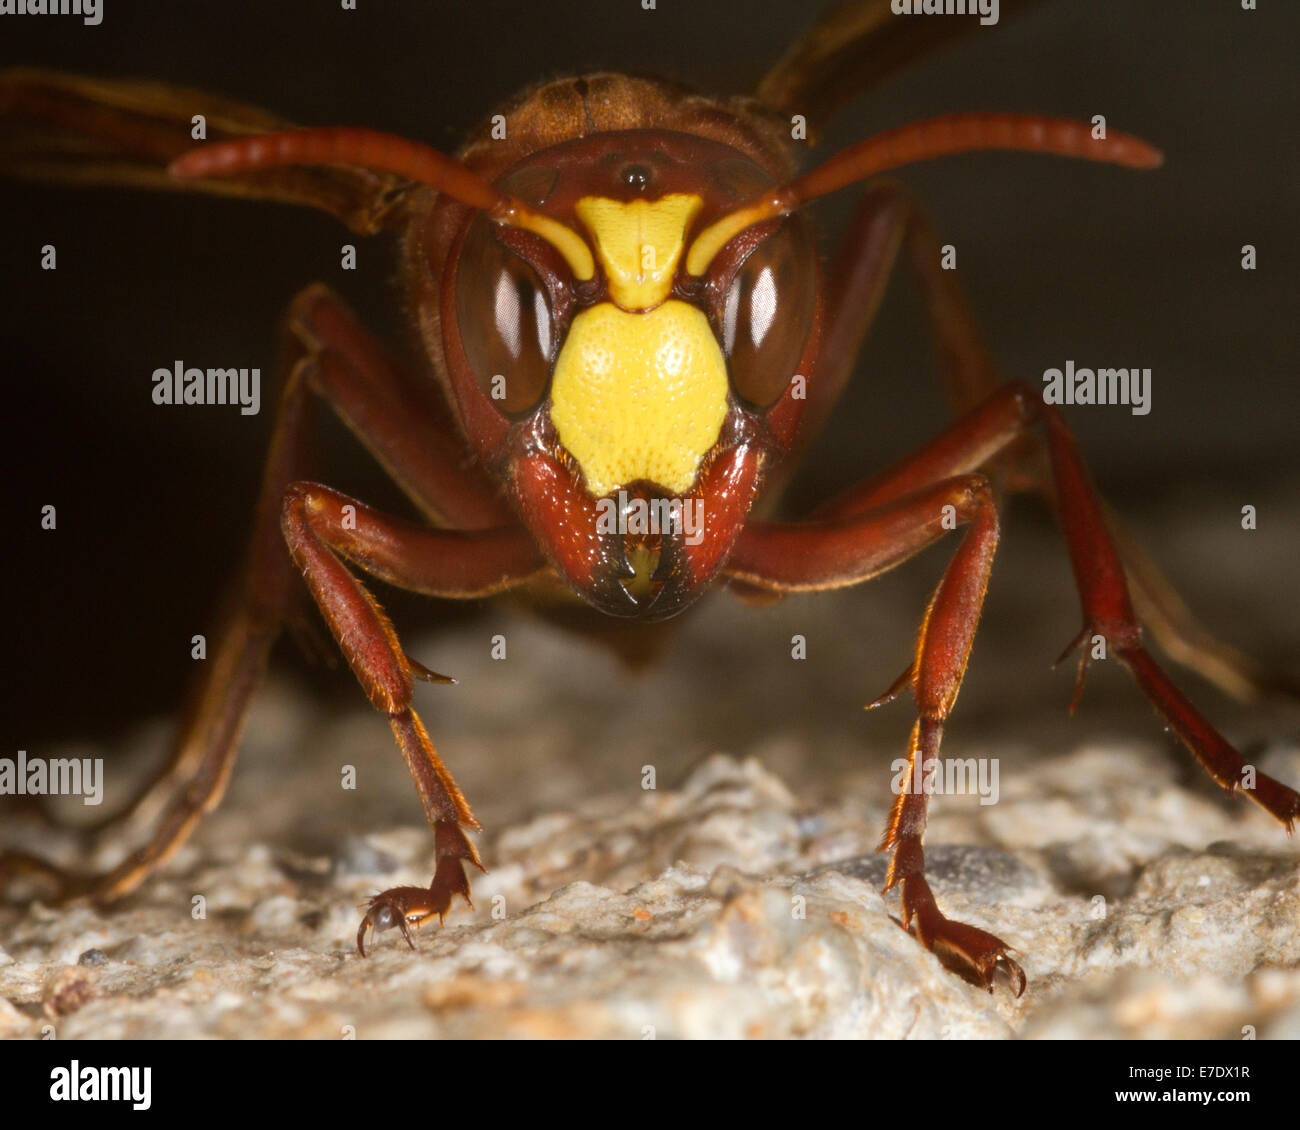 Hornet peering out from crack in a stone wall - Stock Image